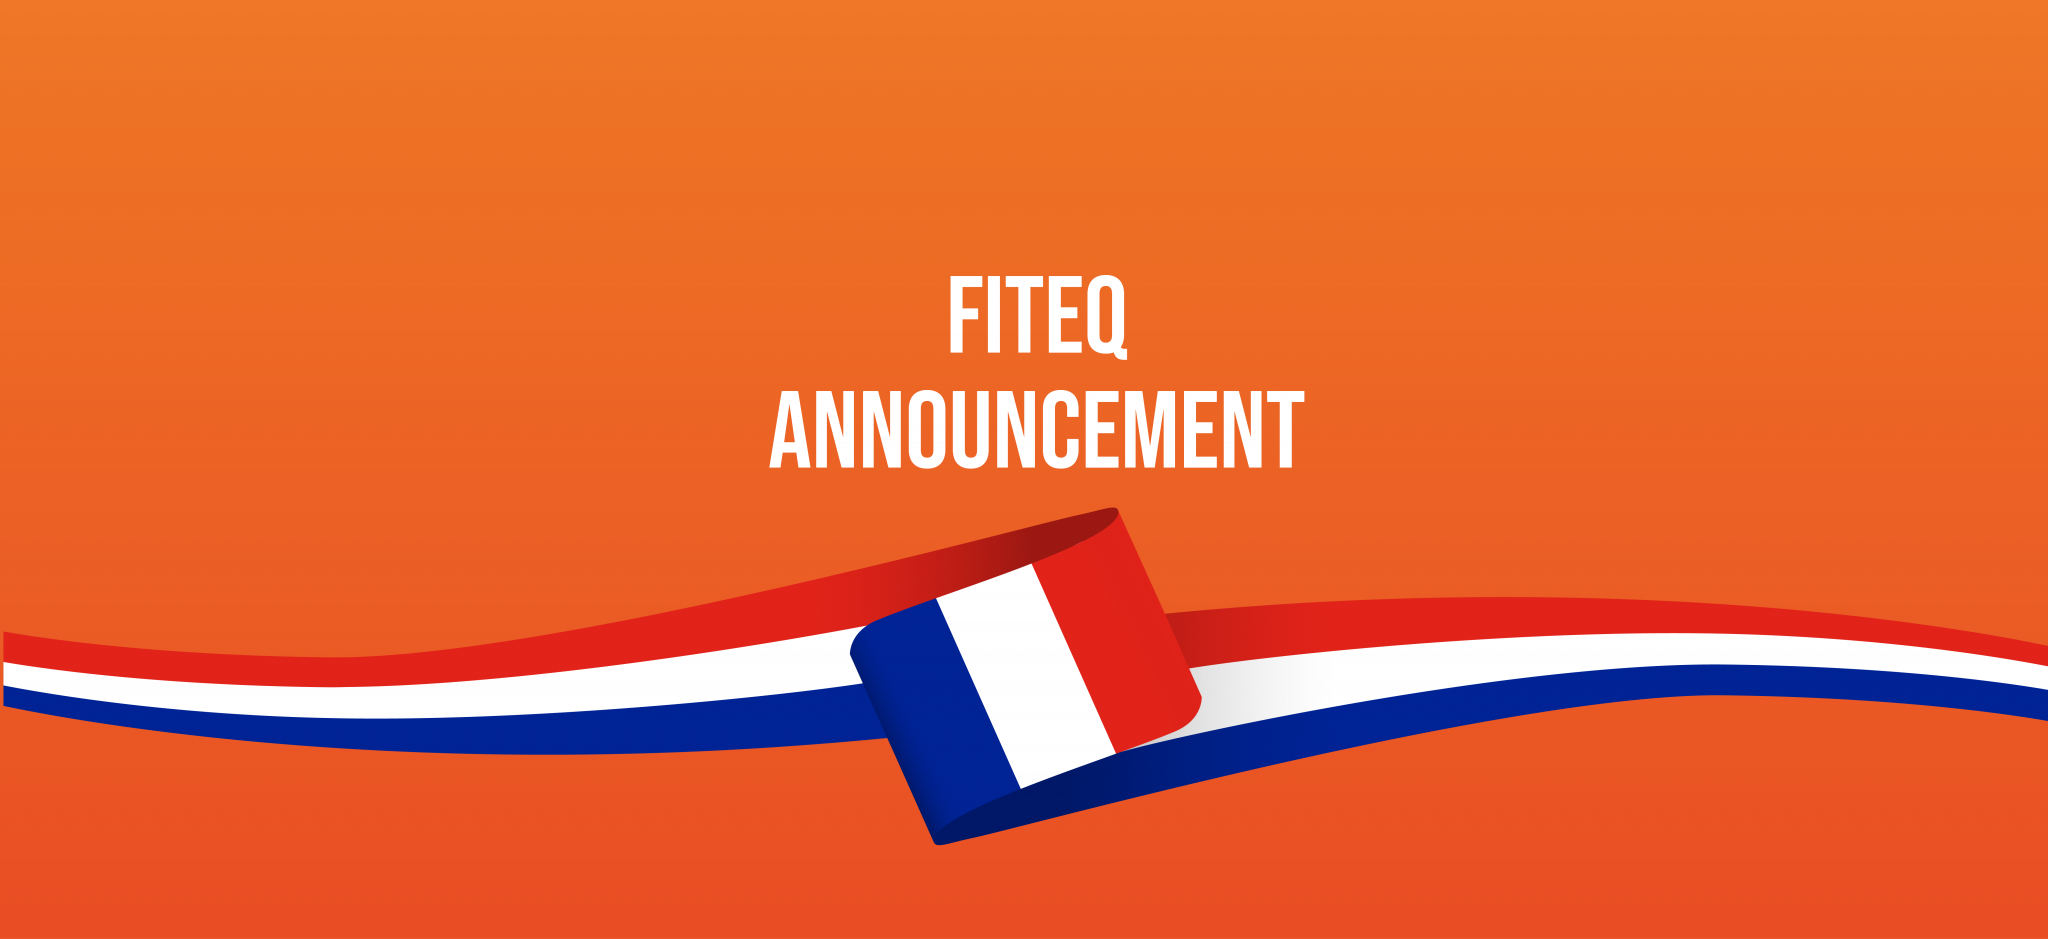 FITEQ launches new French language version of its website